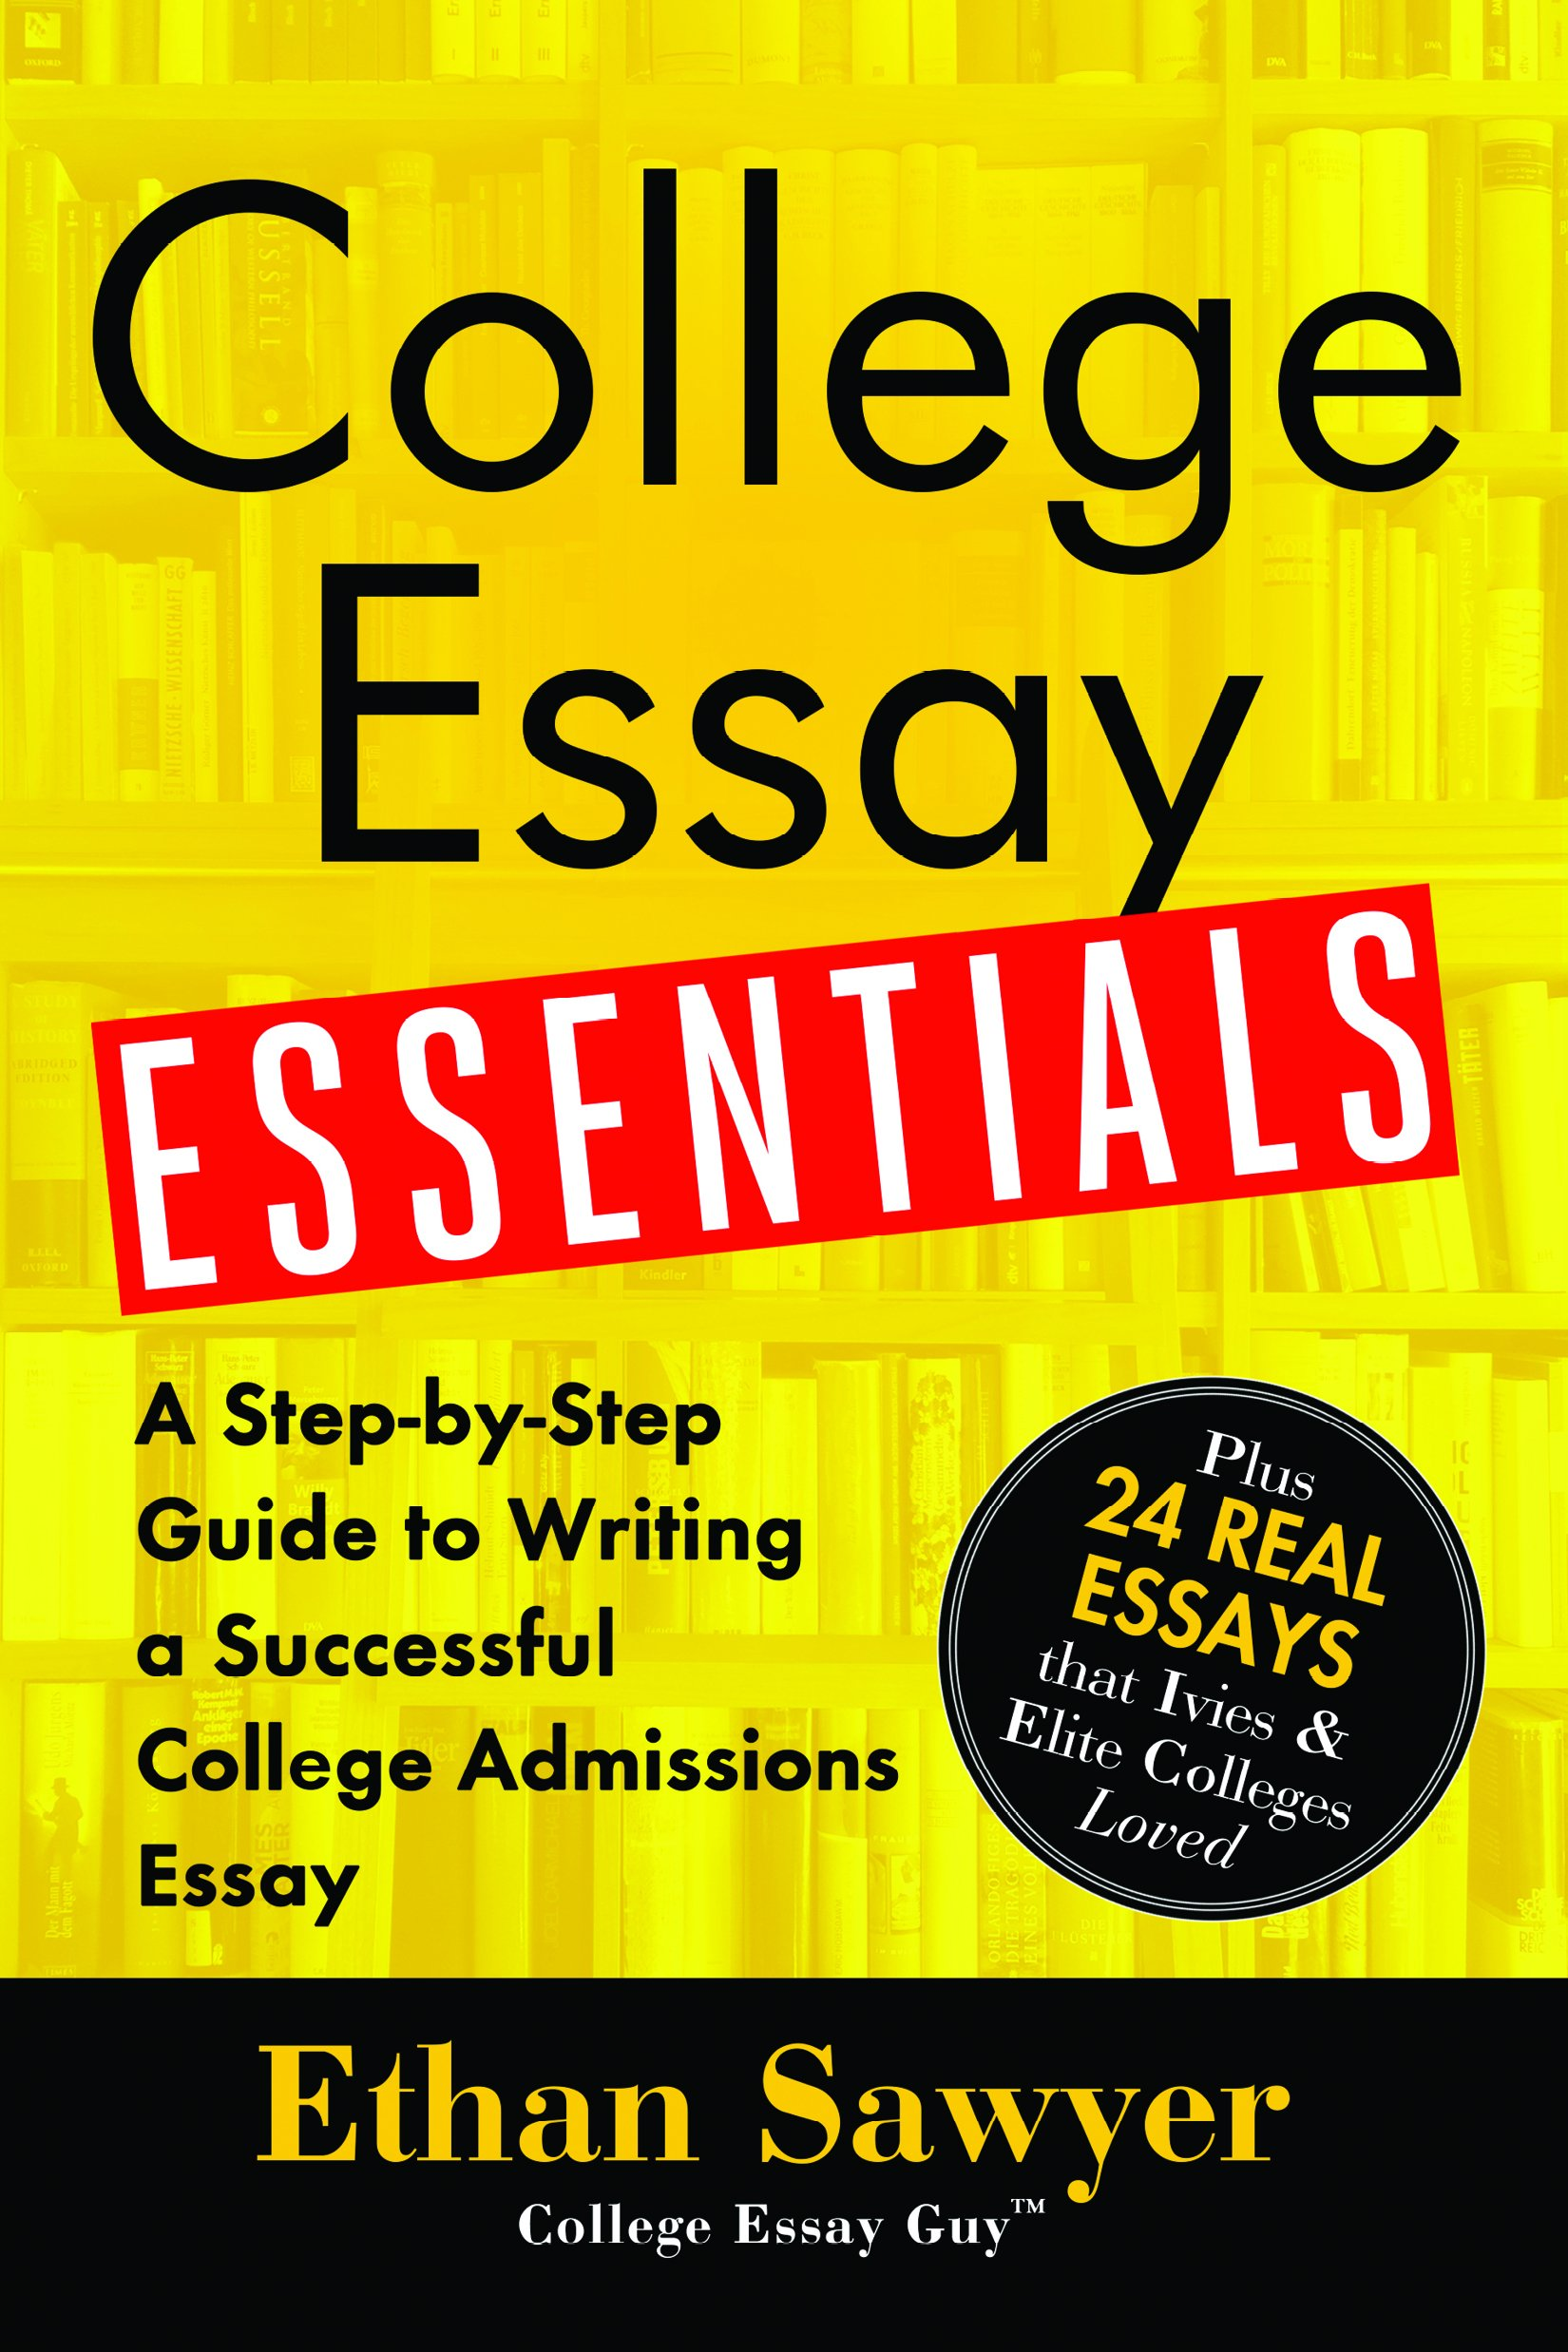 College Essay Essentials: A Step-by-Step Guide to Writing a Successful  College Admissions Essay: Ethan Sawyer: 9781492635123: Amazon.com: Books